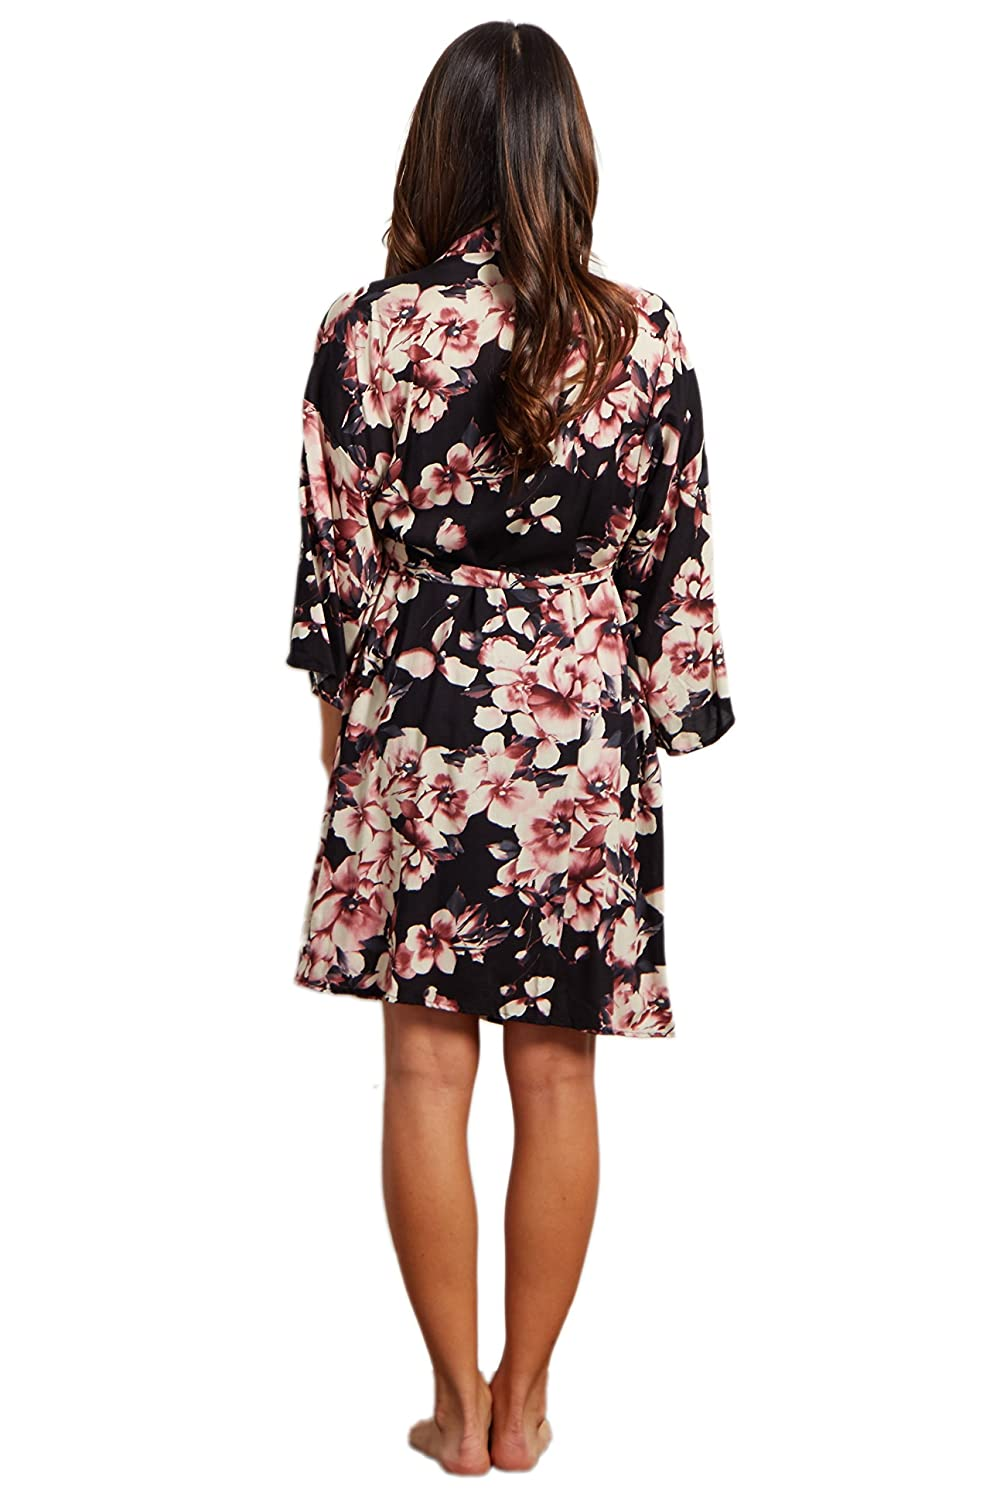 c6a88867d79 PinkBlush Maternity Mauve Floral Delivery Nursing Maternity Robe ...